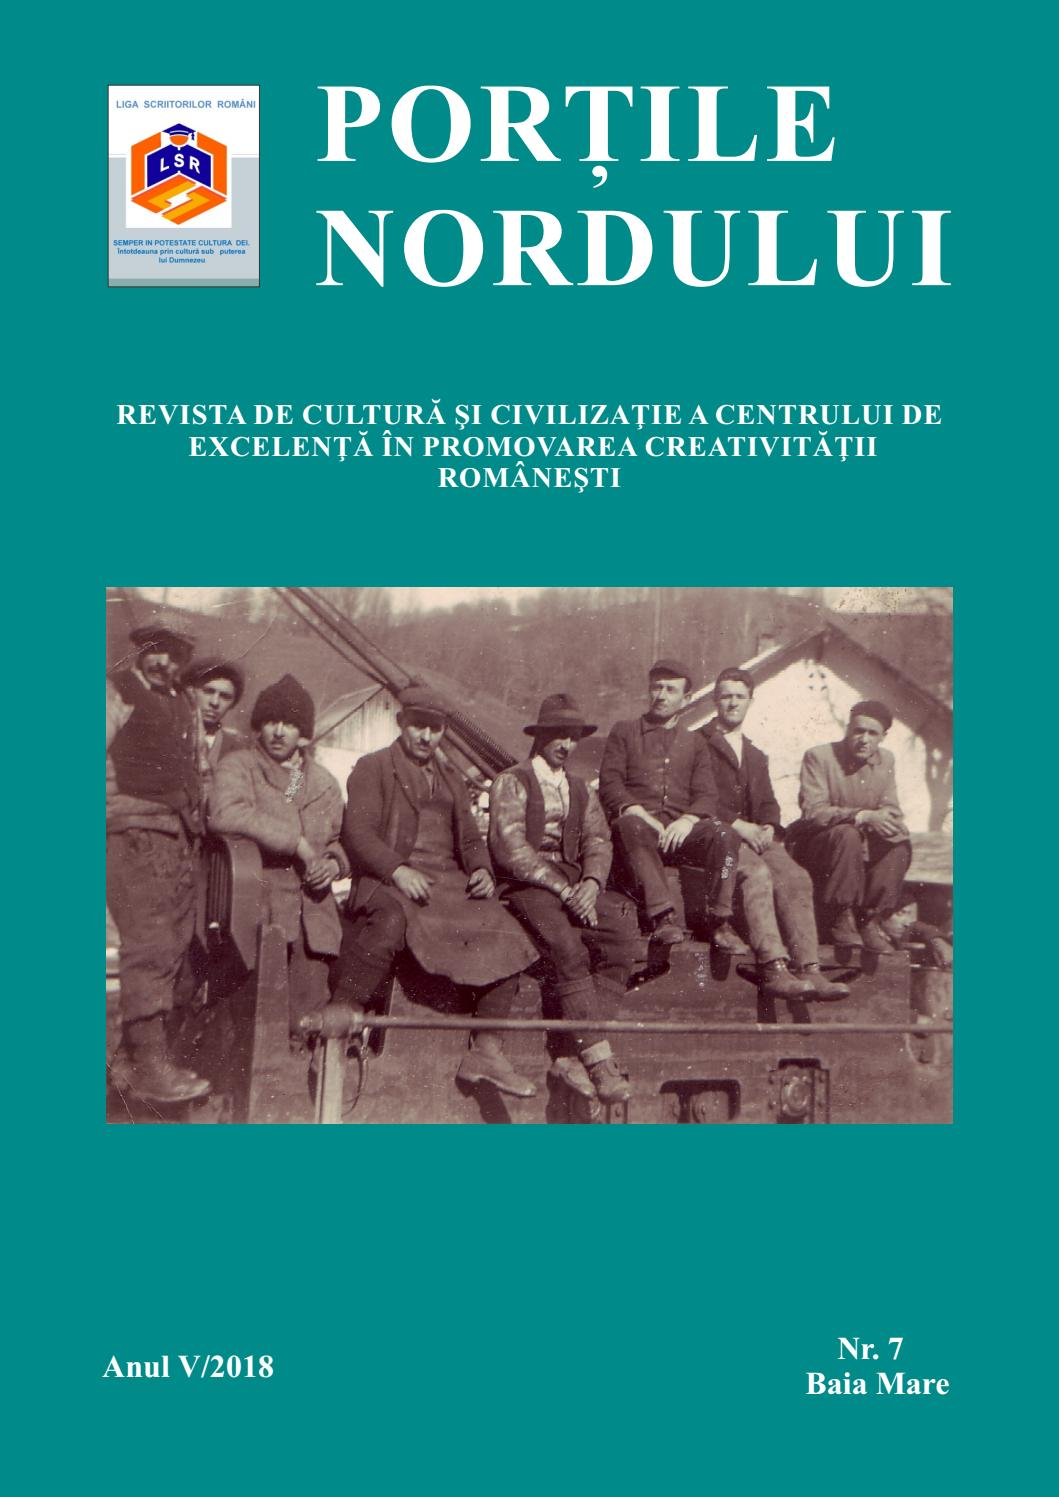 Portile nordului nr 7, 2018 by Hopernicus - issuu